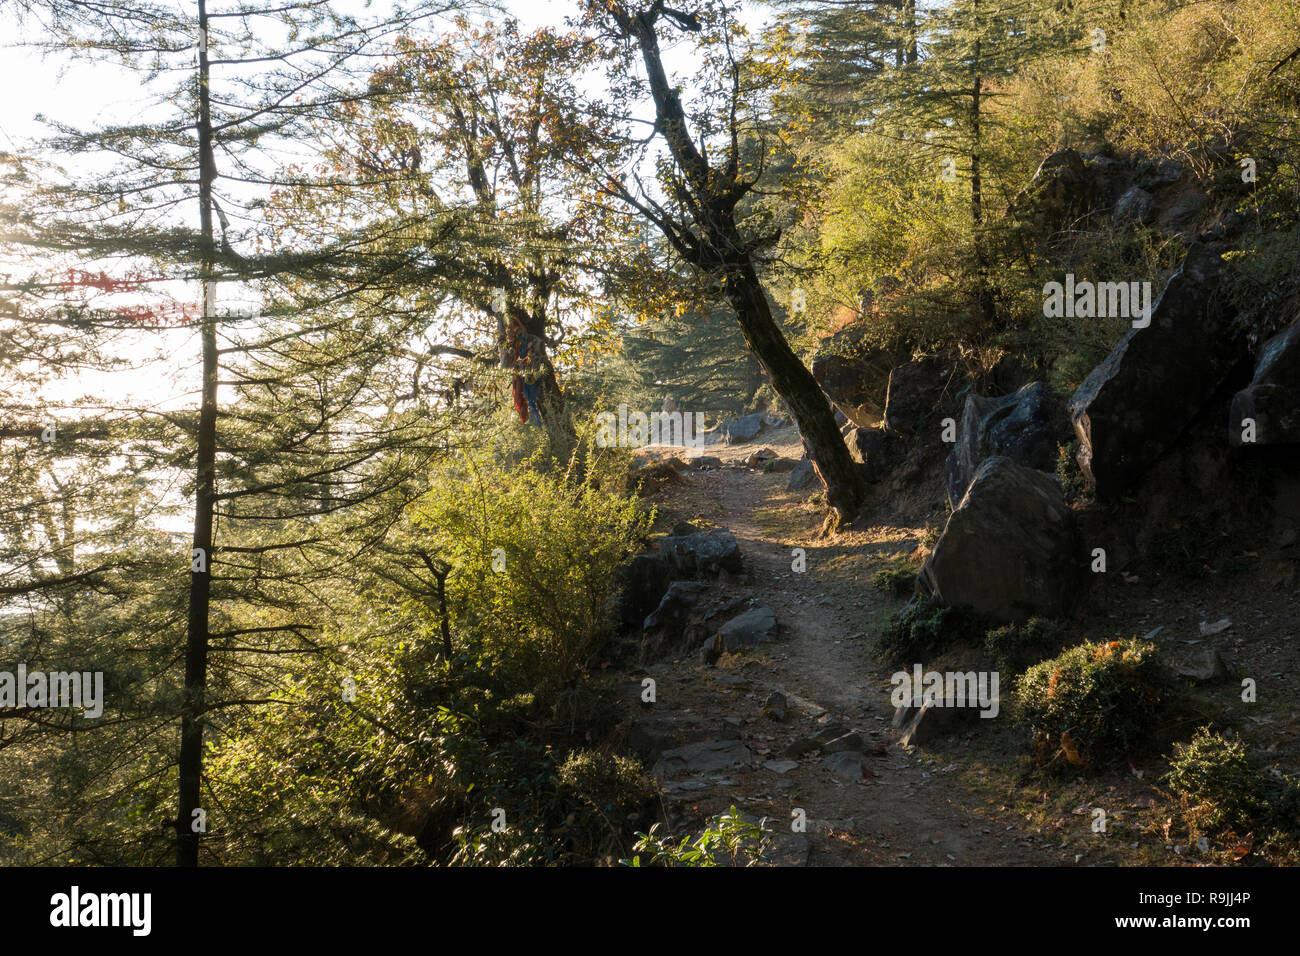 Trail through the forest in Dharamkot, Himachal Pradesh, India - Stock Image